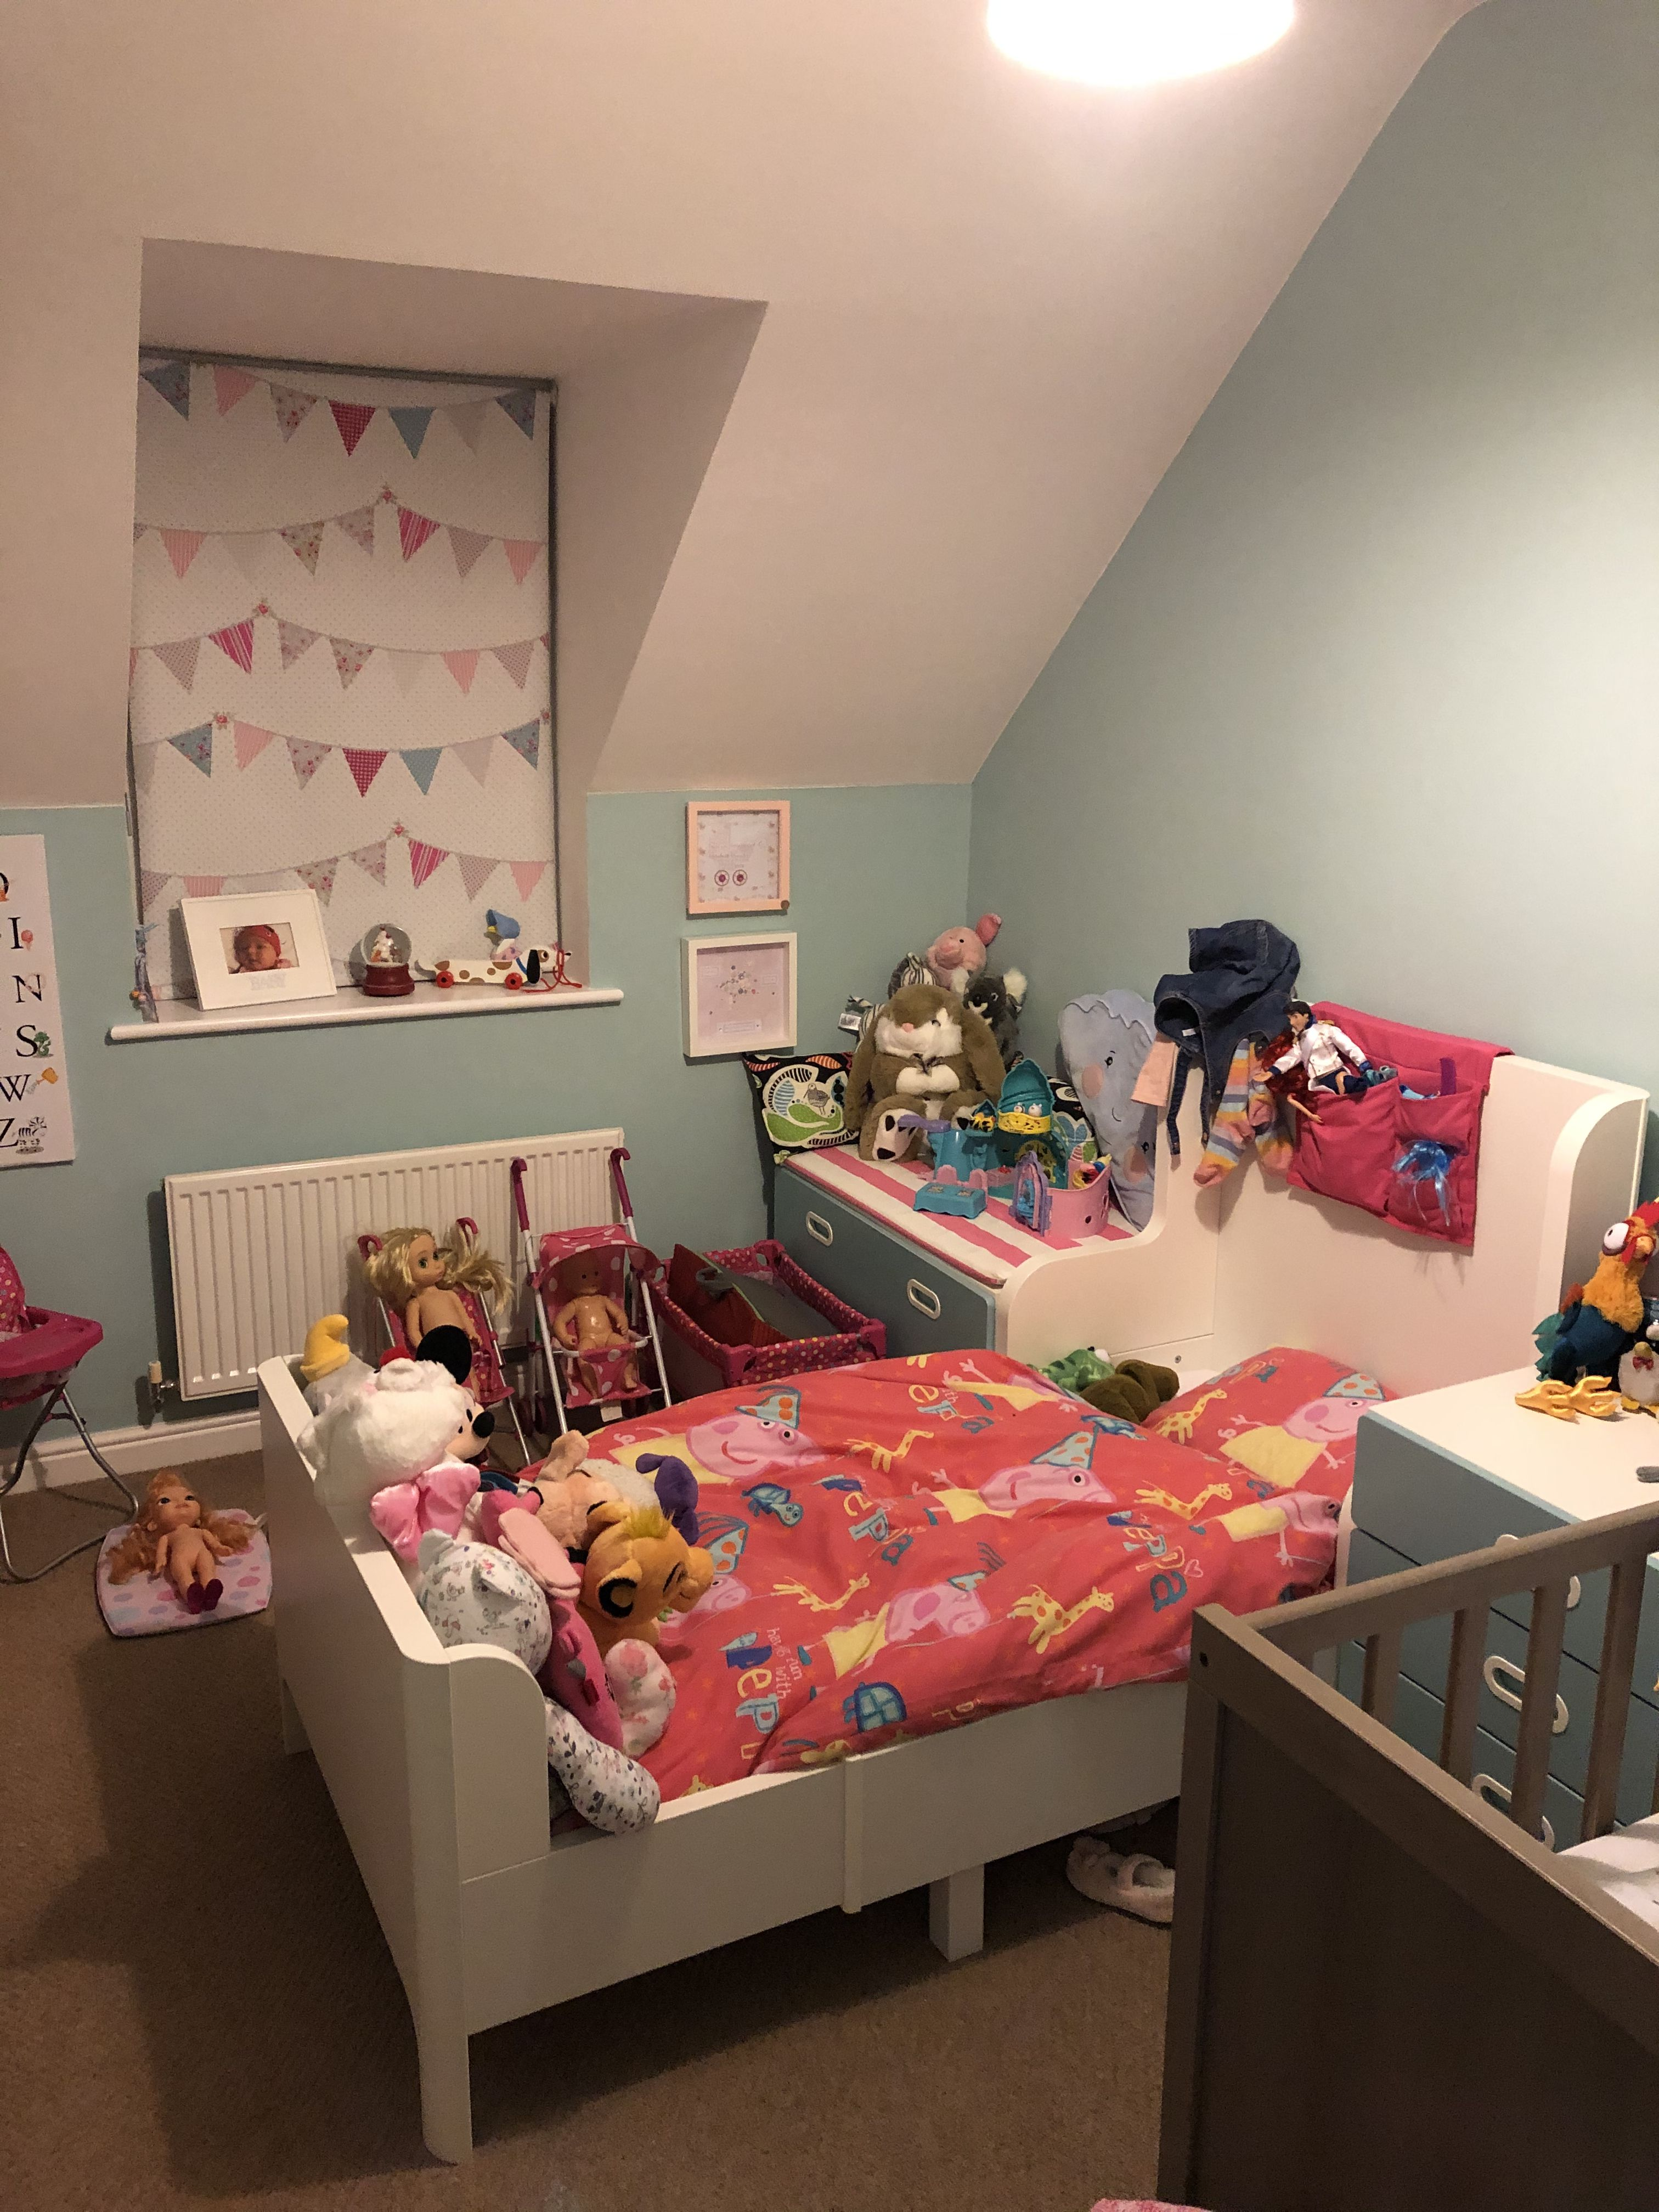 Unisex bedroom for 3 year old girl and 6 month old boy